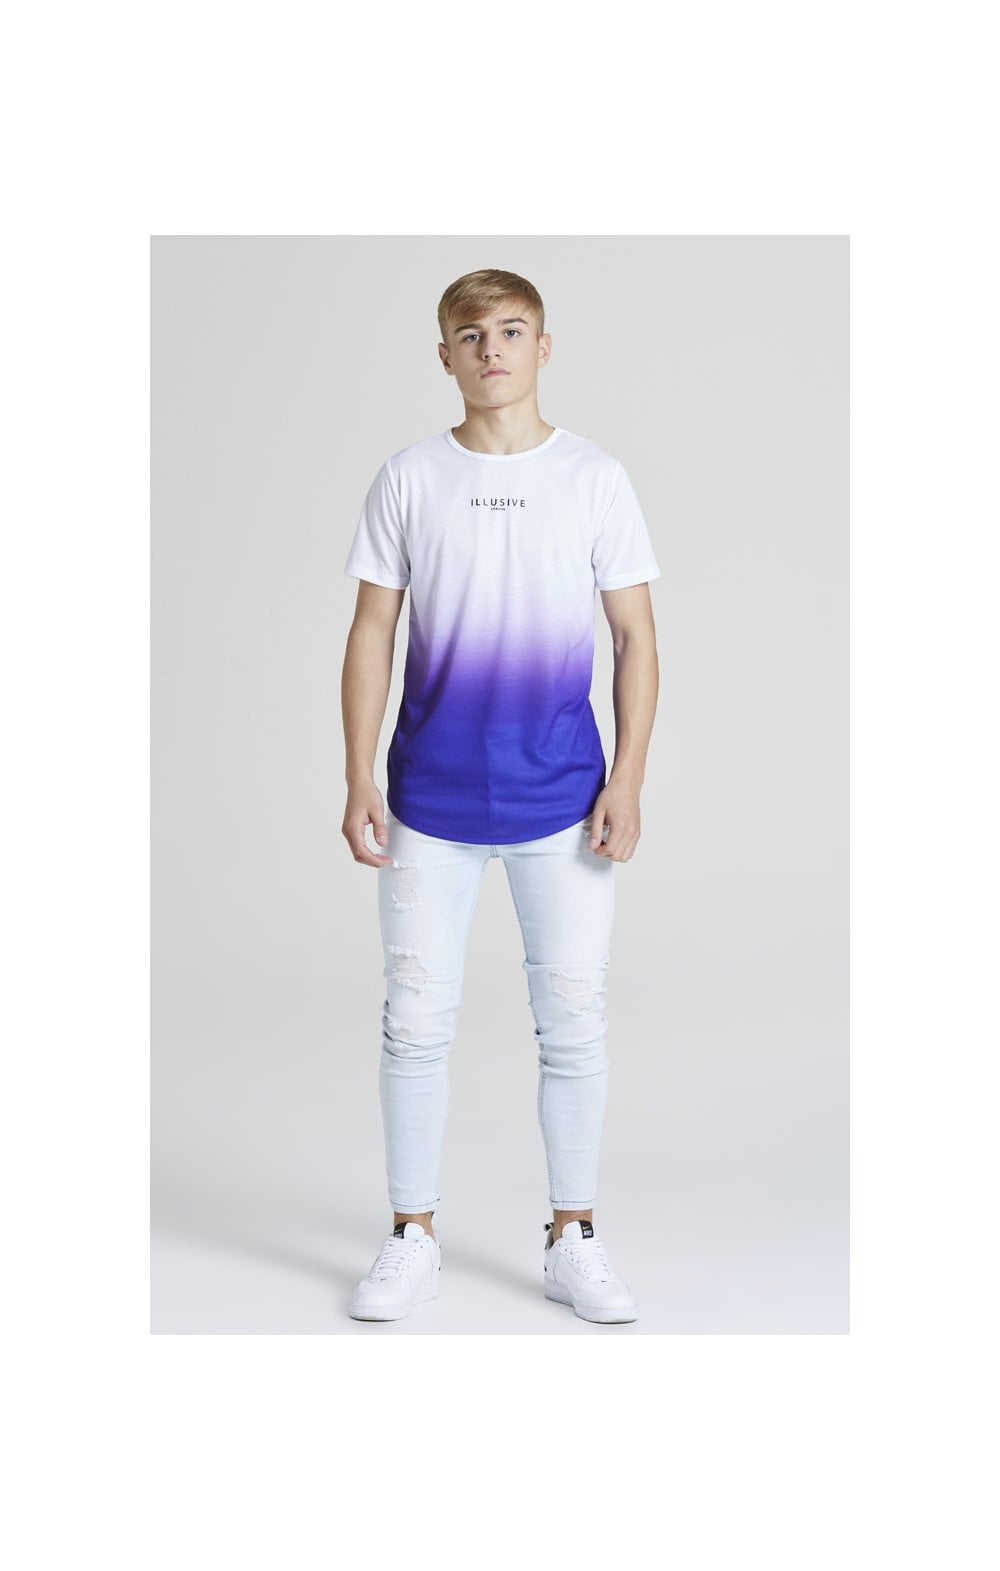 Illusive London Core T-Shirt Verblasst - Weiß und Lila (4)